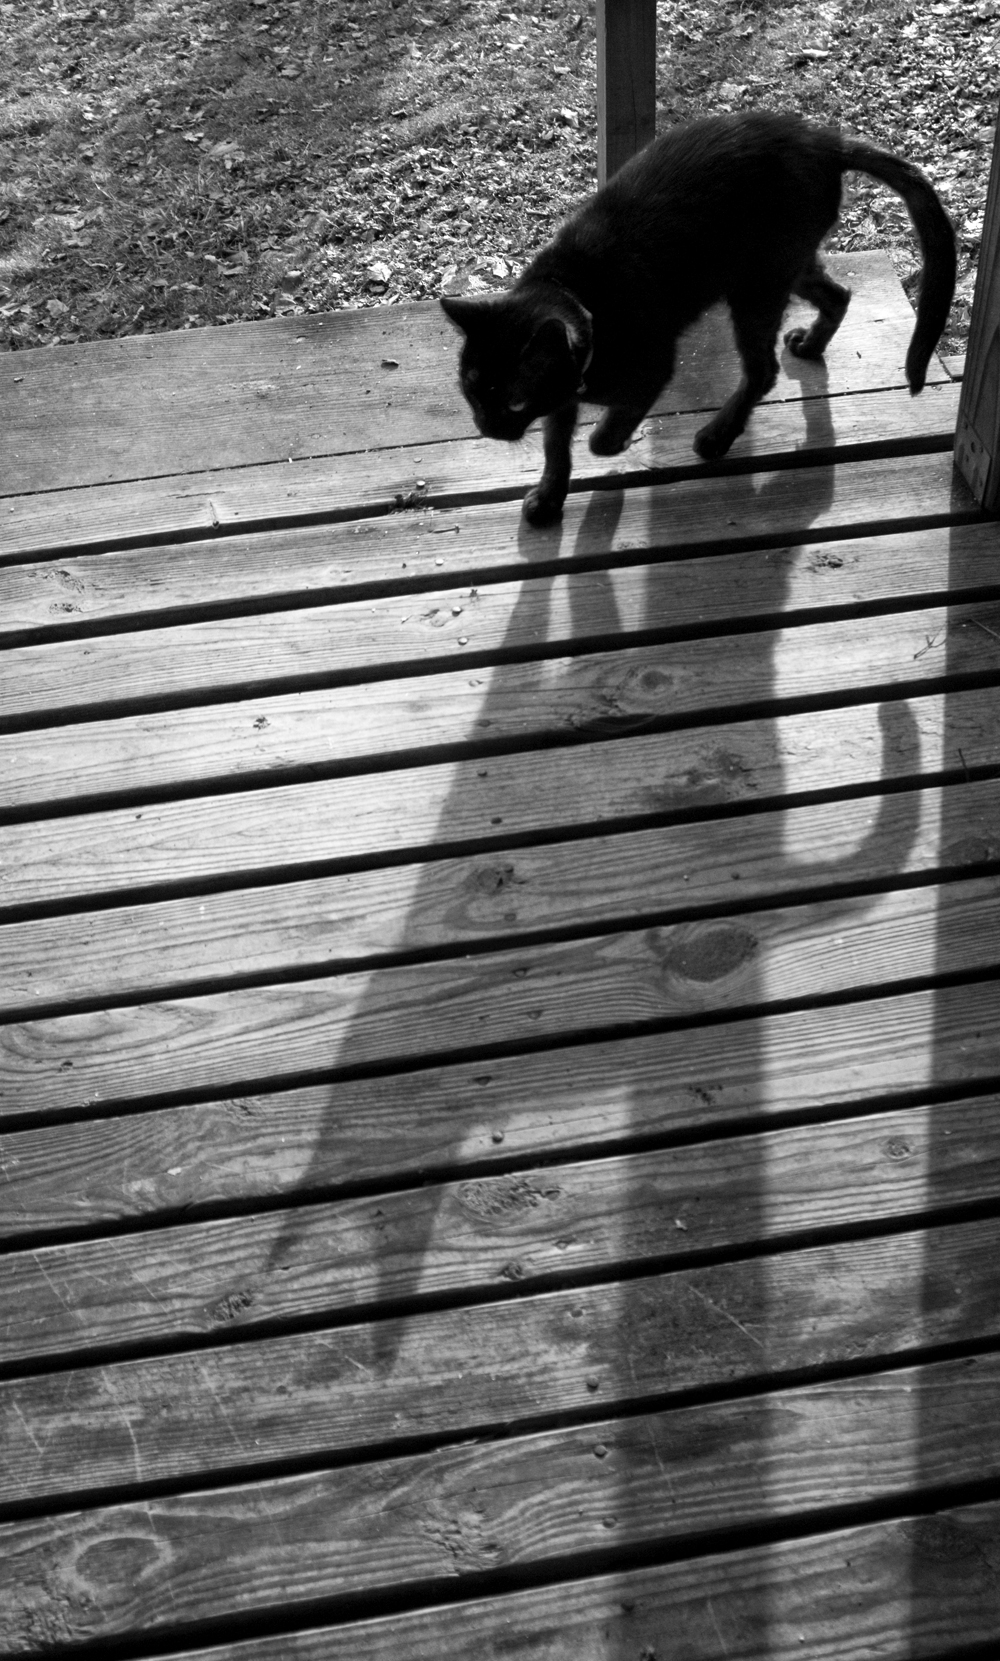 black cat with long shadow